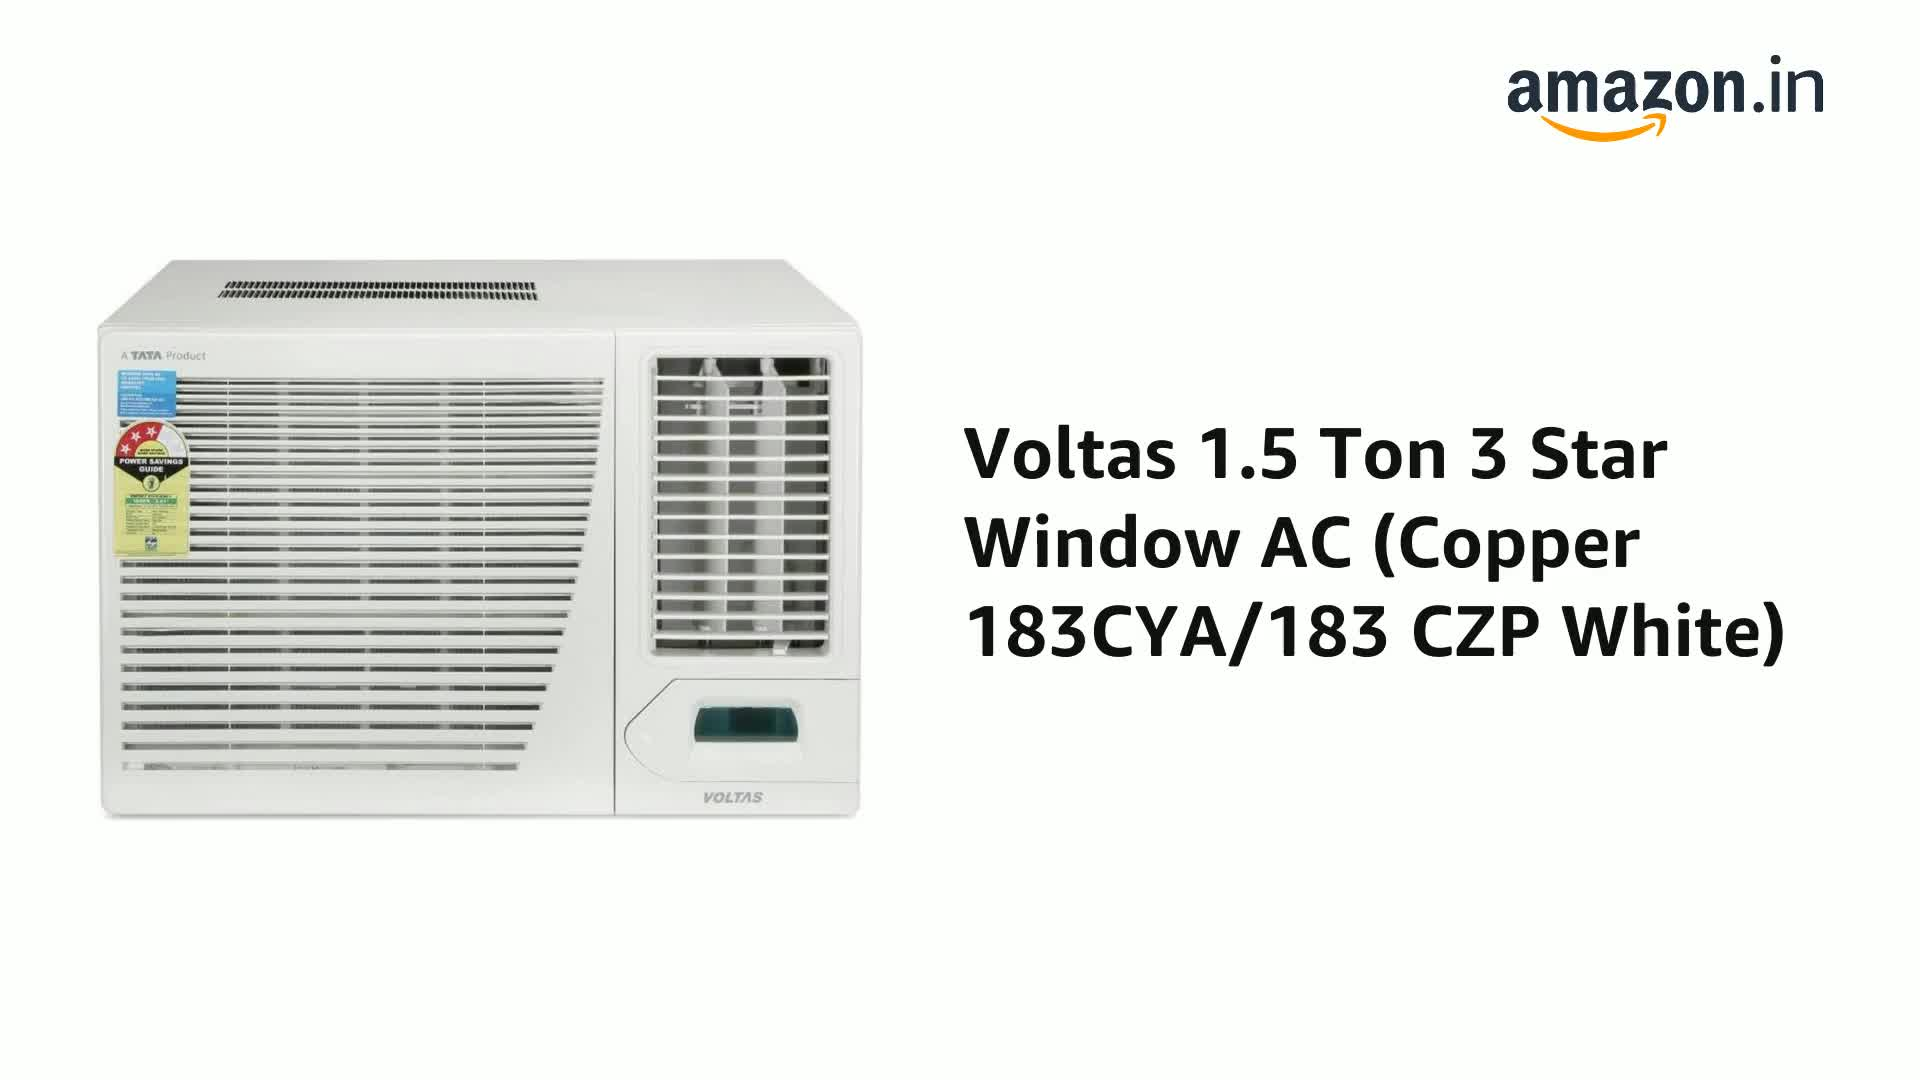 Voltas 1.5 Ton Window AC 3 Star 1